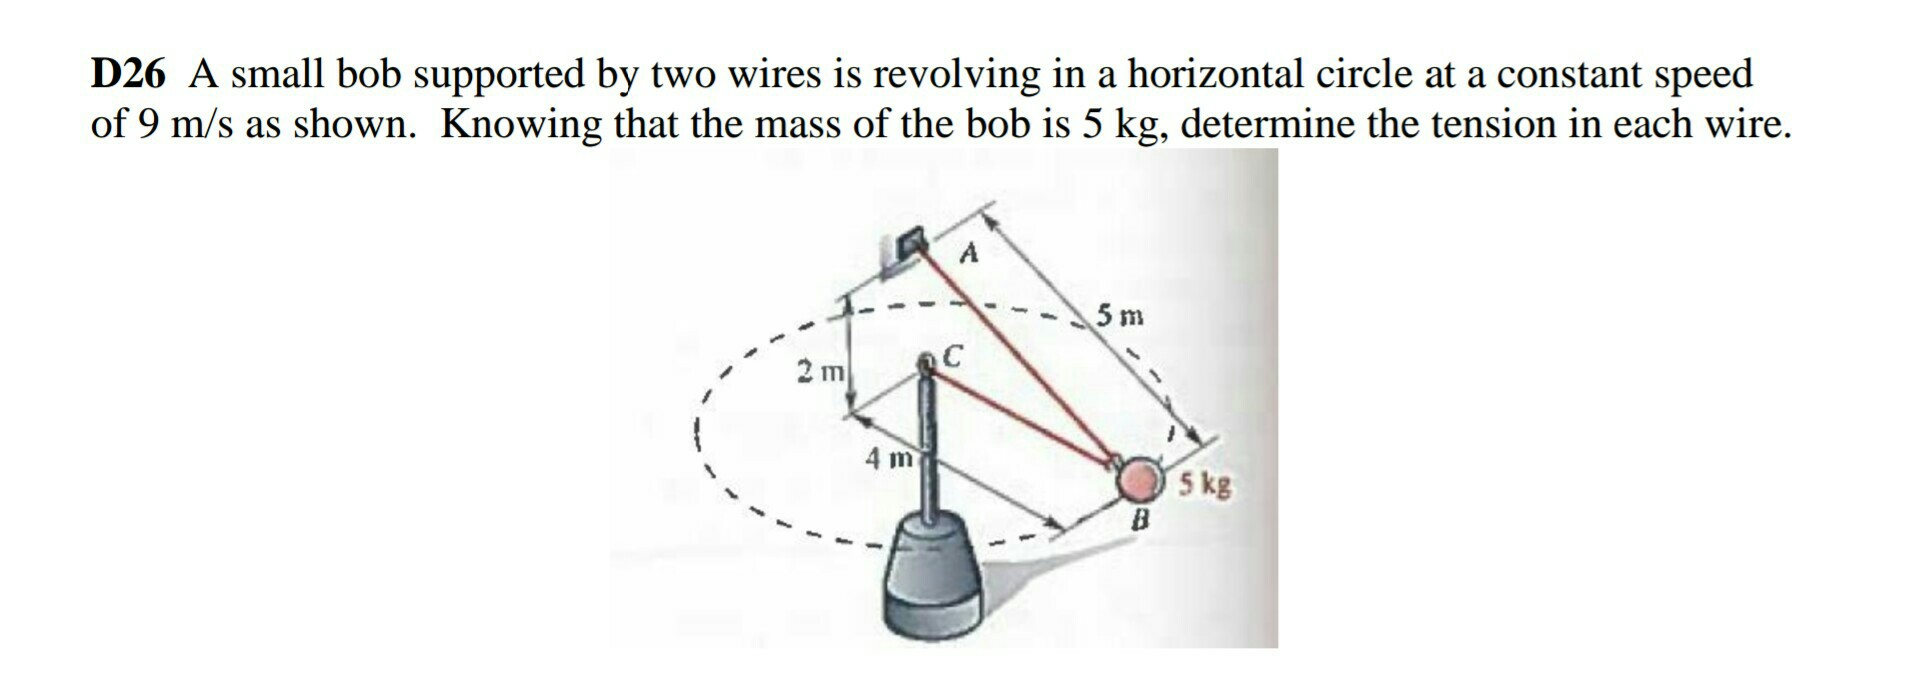 A Small Bob Supported By Two Wires Is Revolving In... | Chegg.com